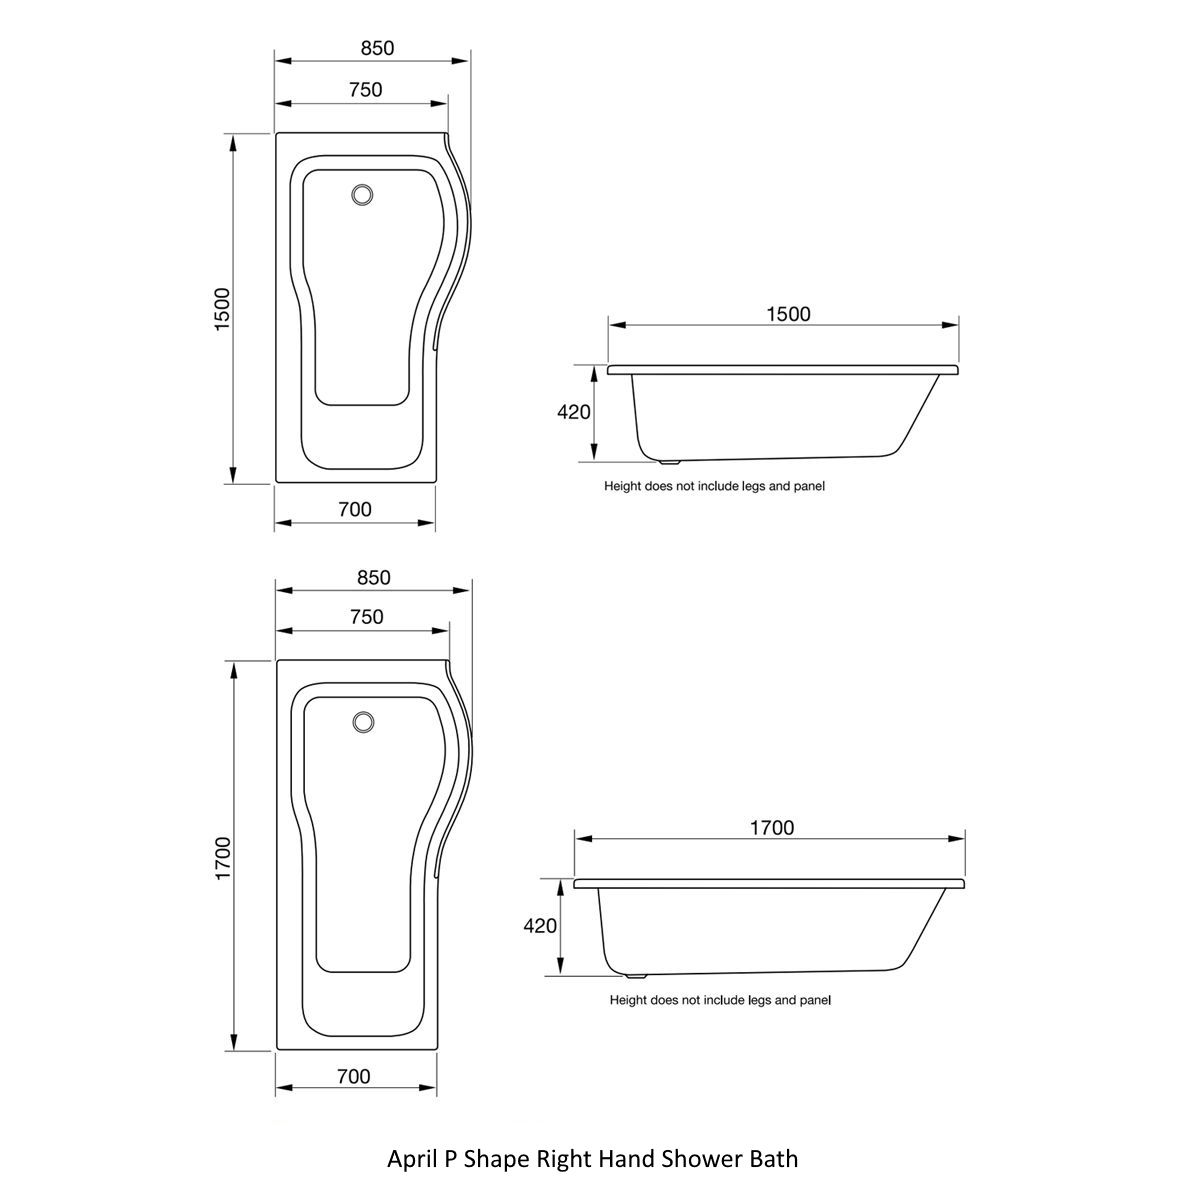 P Shape Right Hand Shower Bath Dimensions